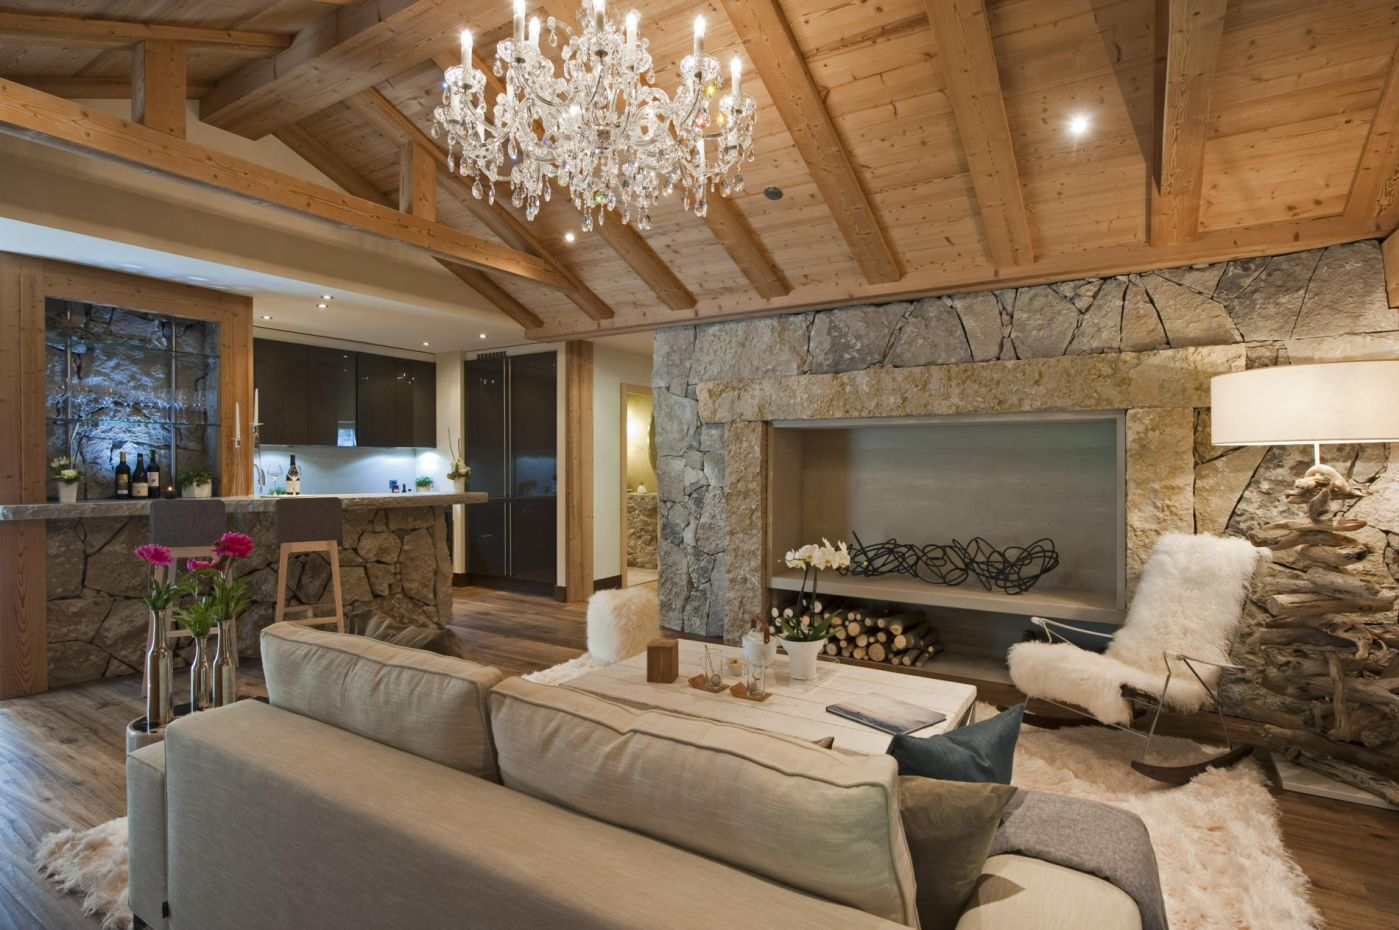 Switzerland mountains - Wood, all the texture and natural elements